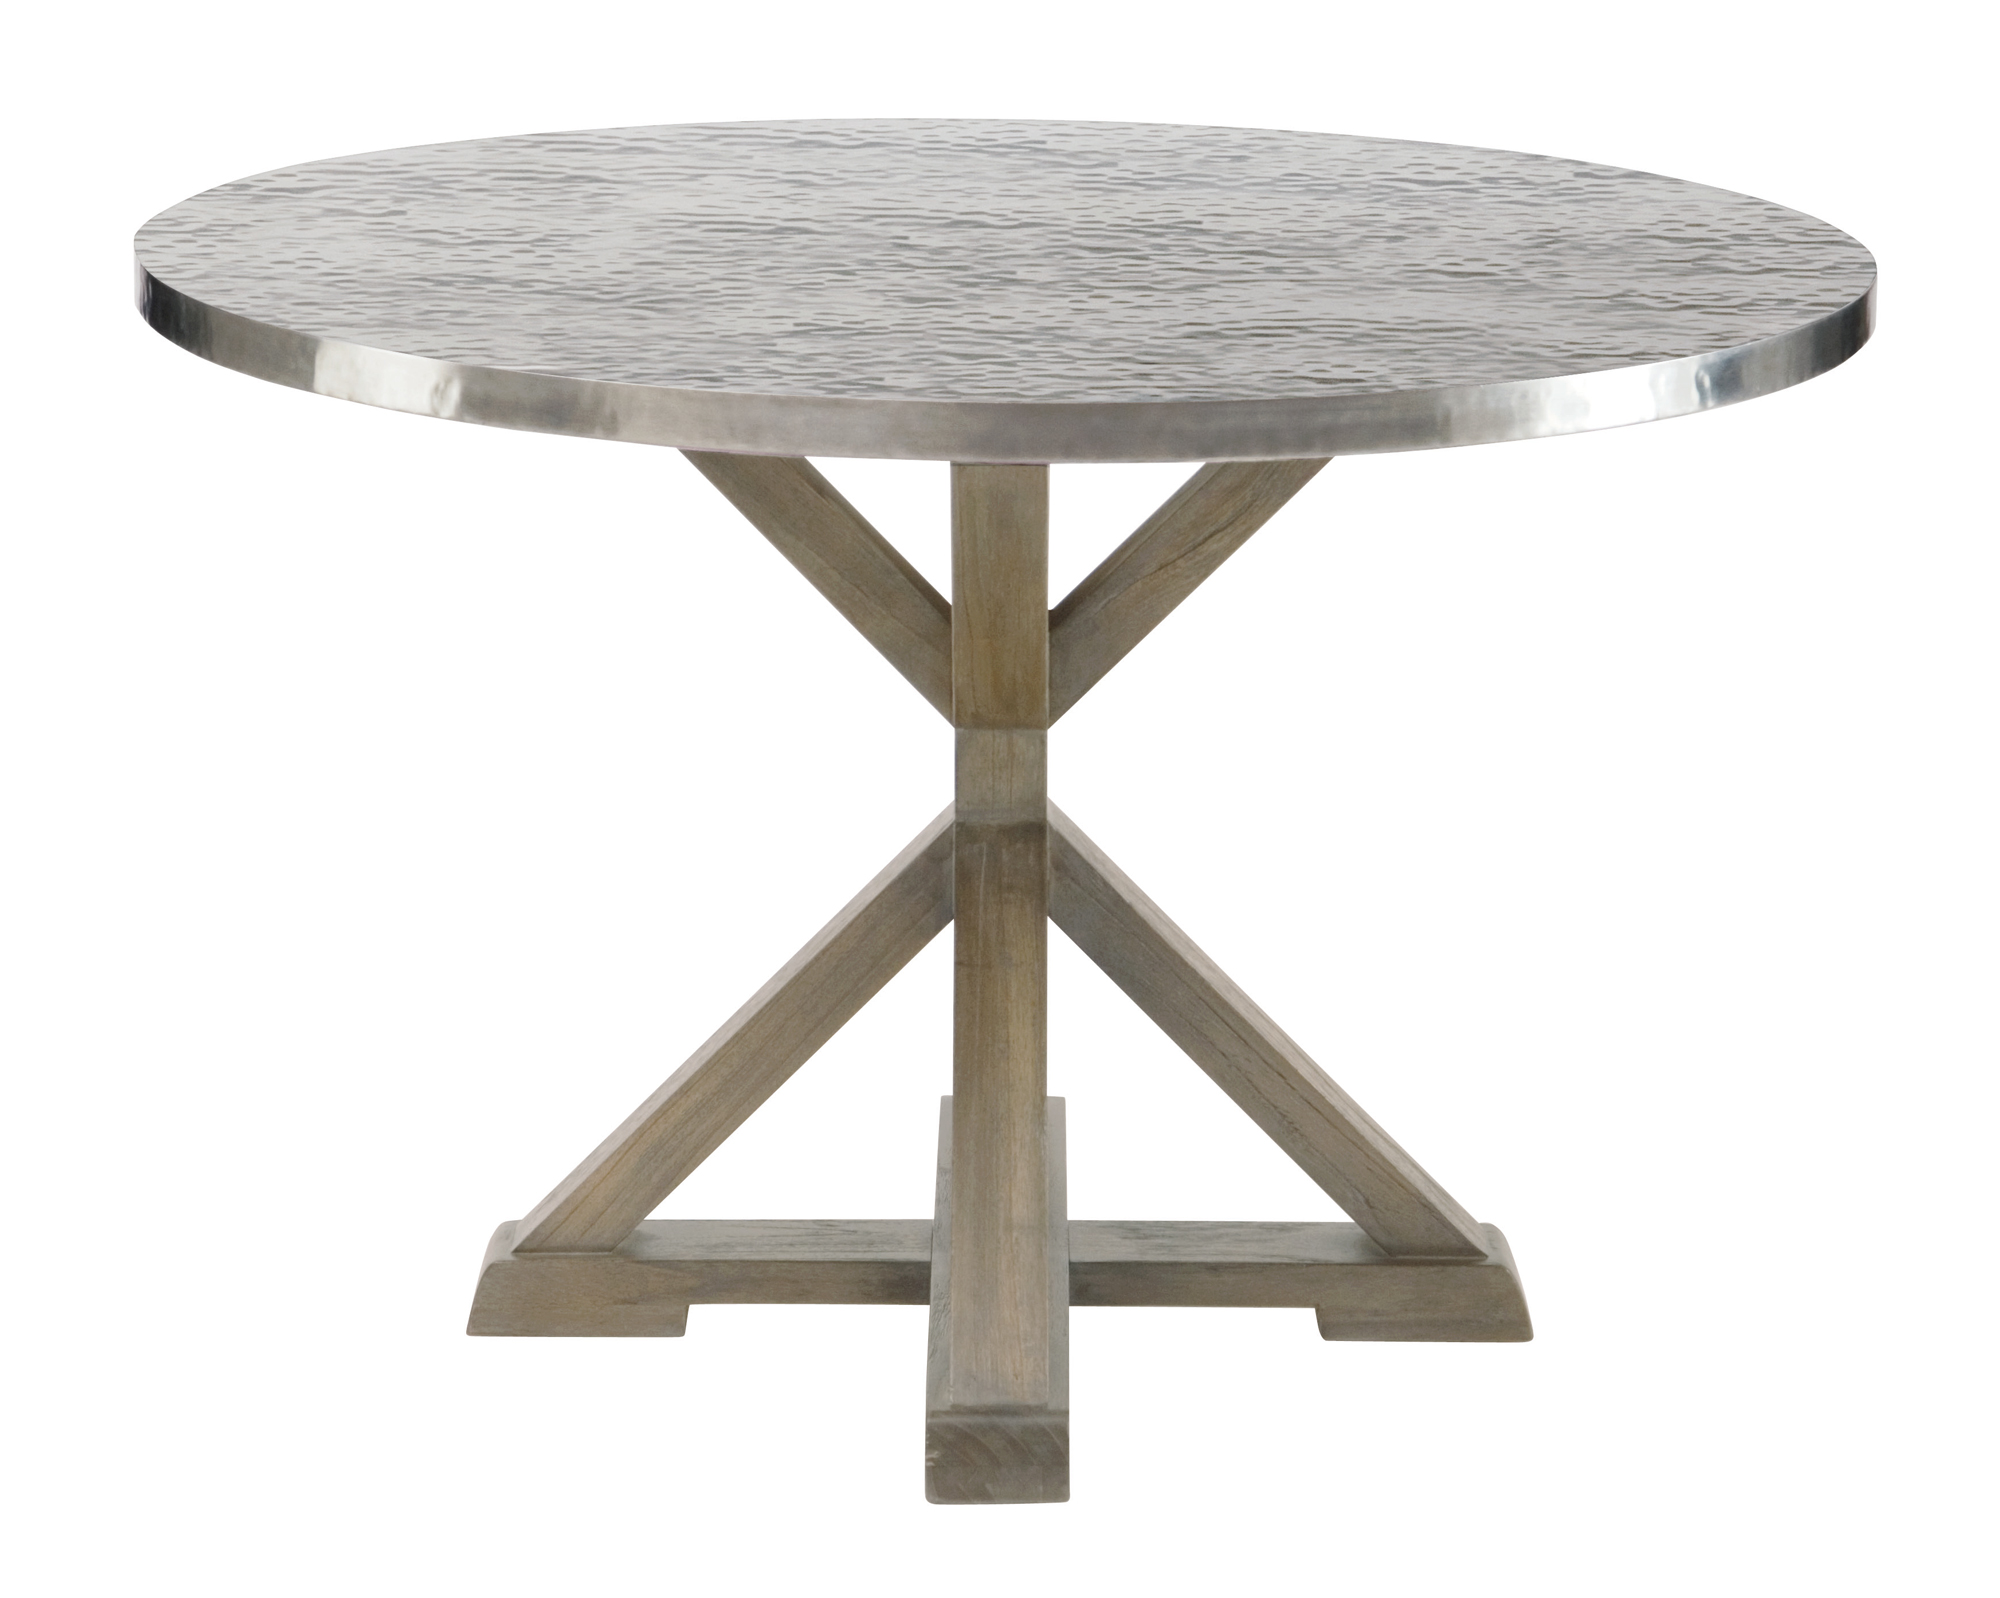 round metal dining table metal kitchen table Stockton Round Metal Dining Table